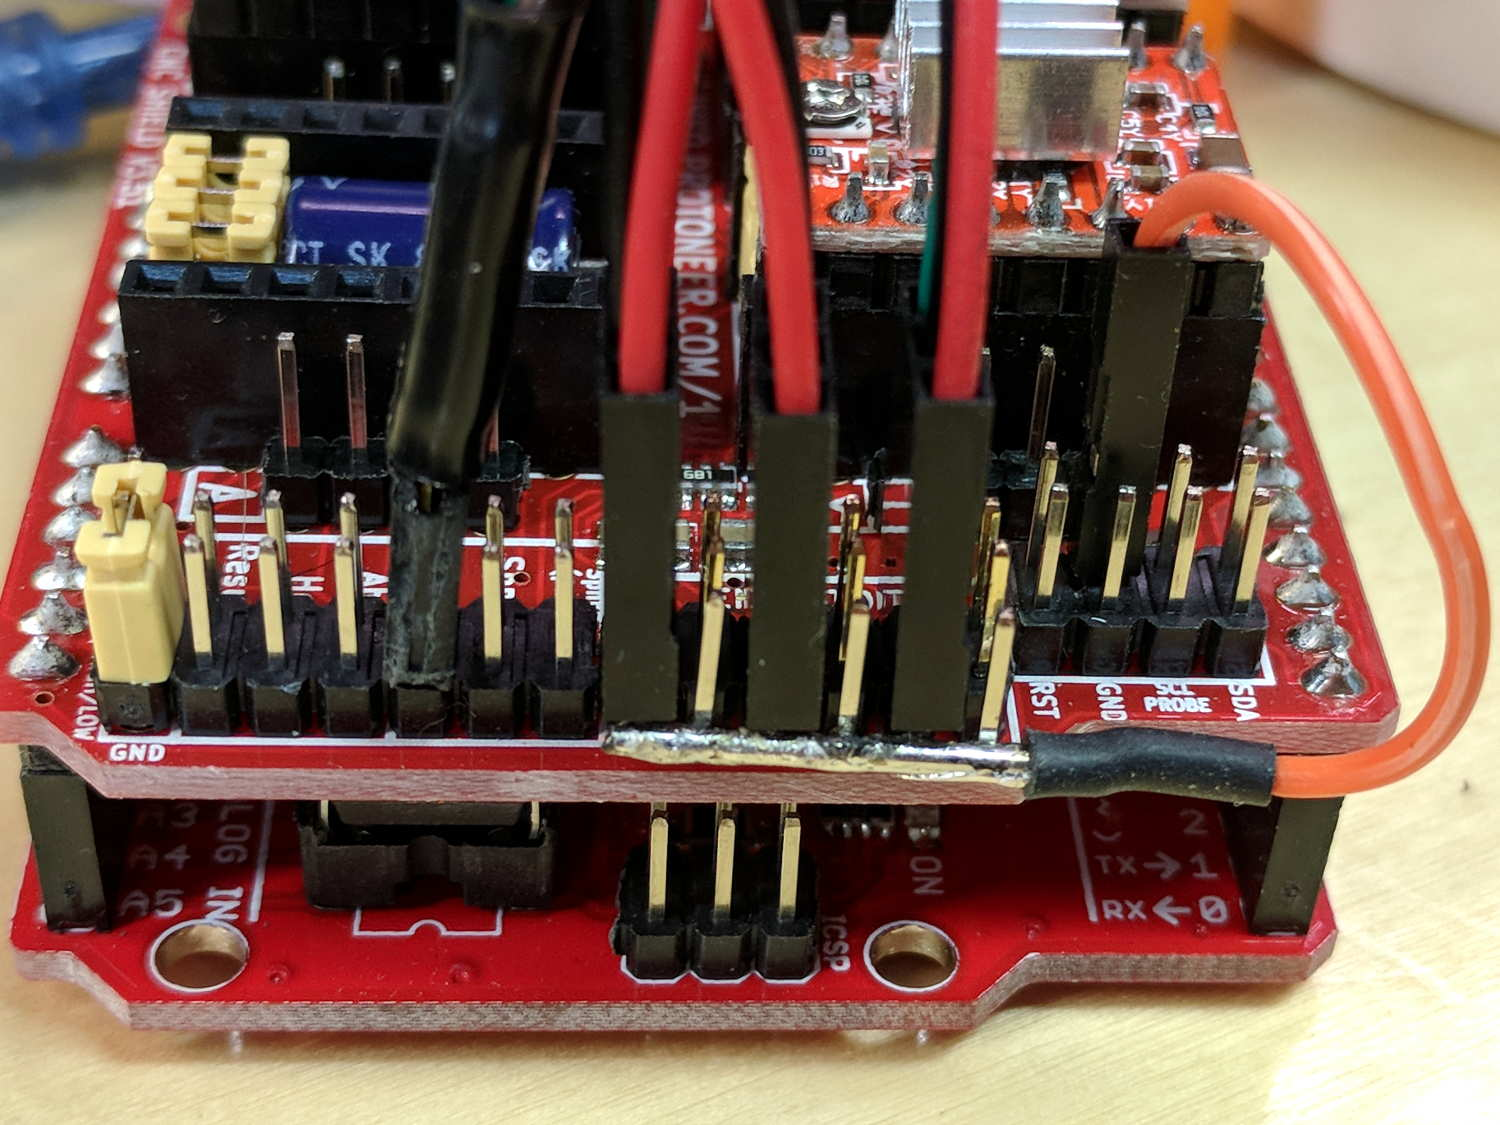 Makerbot-style Endstop Power Adapter for Protoneer Arduino CNC